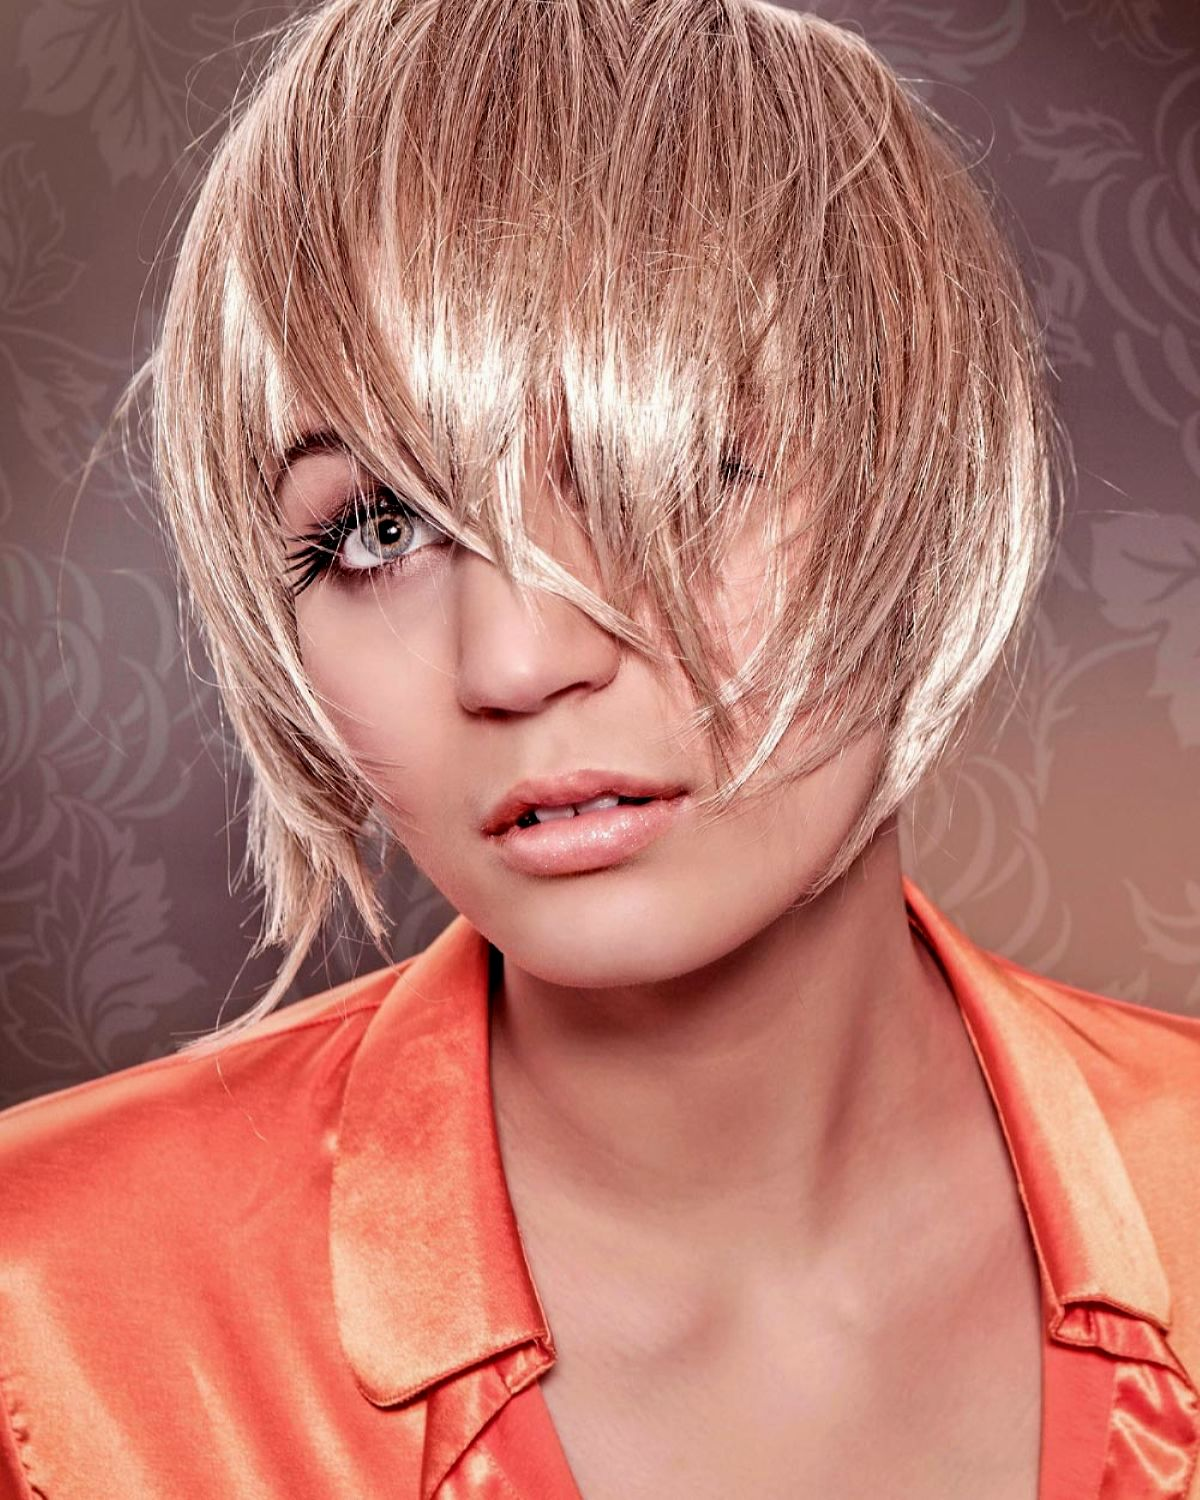 new frilly short hairstyles plan-Superb fringe short hairstyles pattern